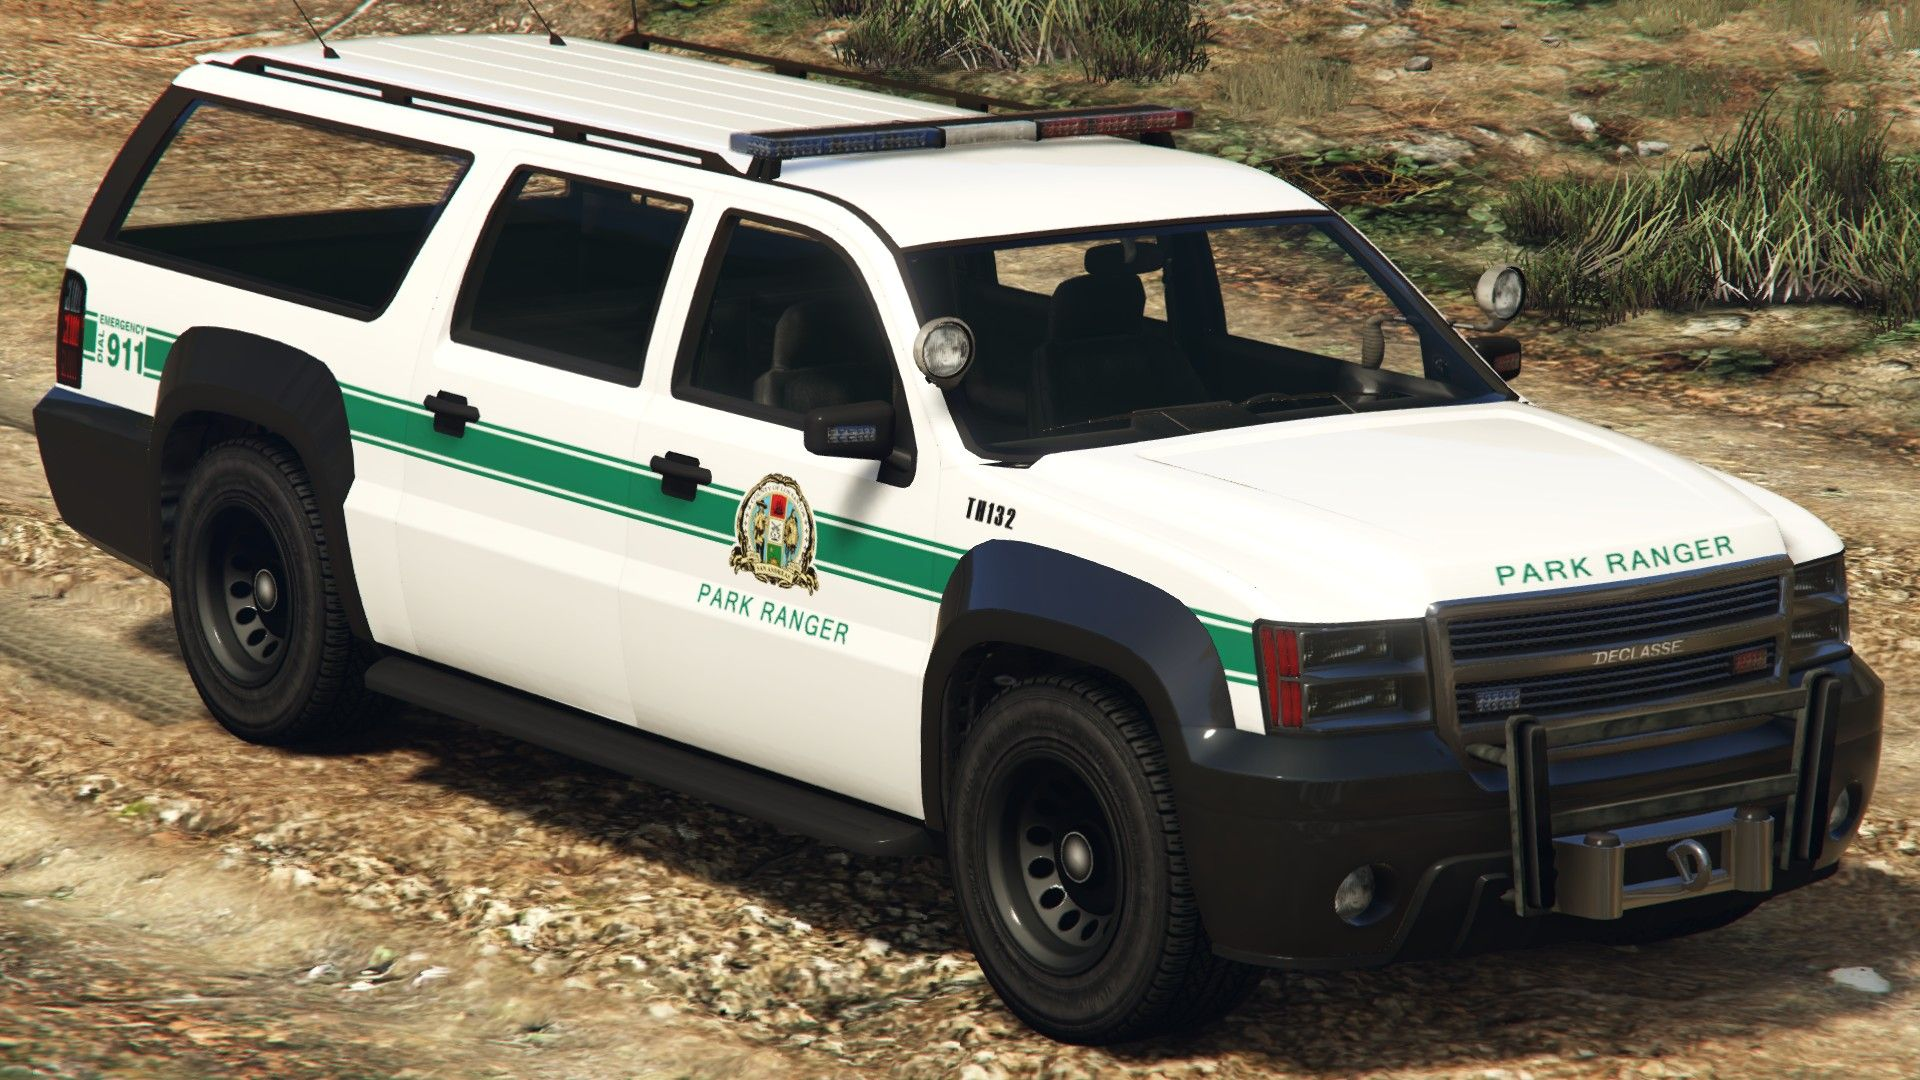 Pin by Ricardo Rodriguez on police vehicles | Police cars, Gta, Vehicles